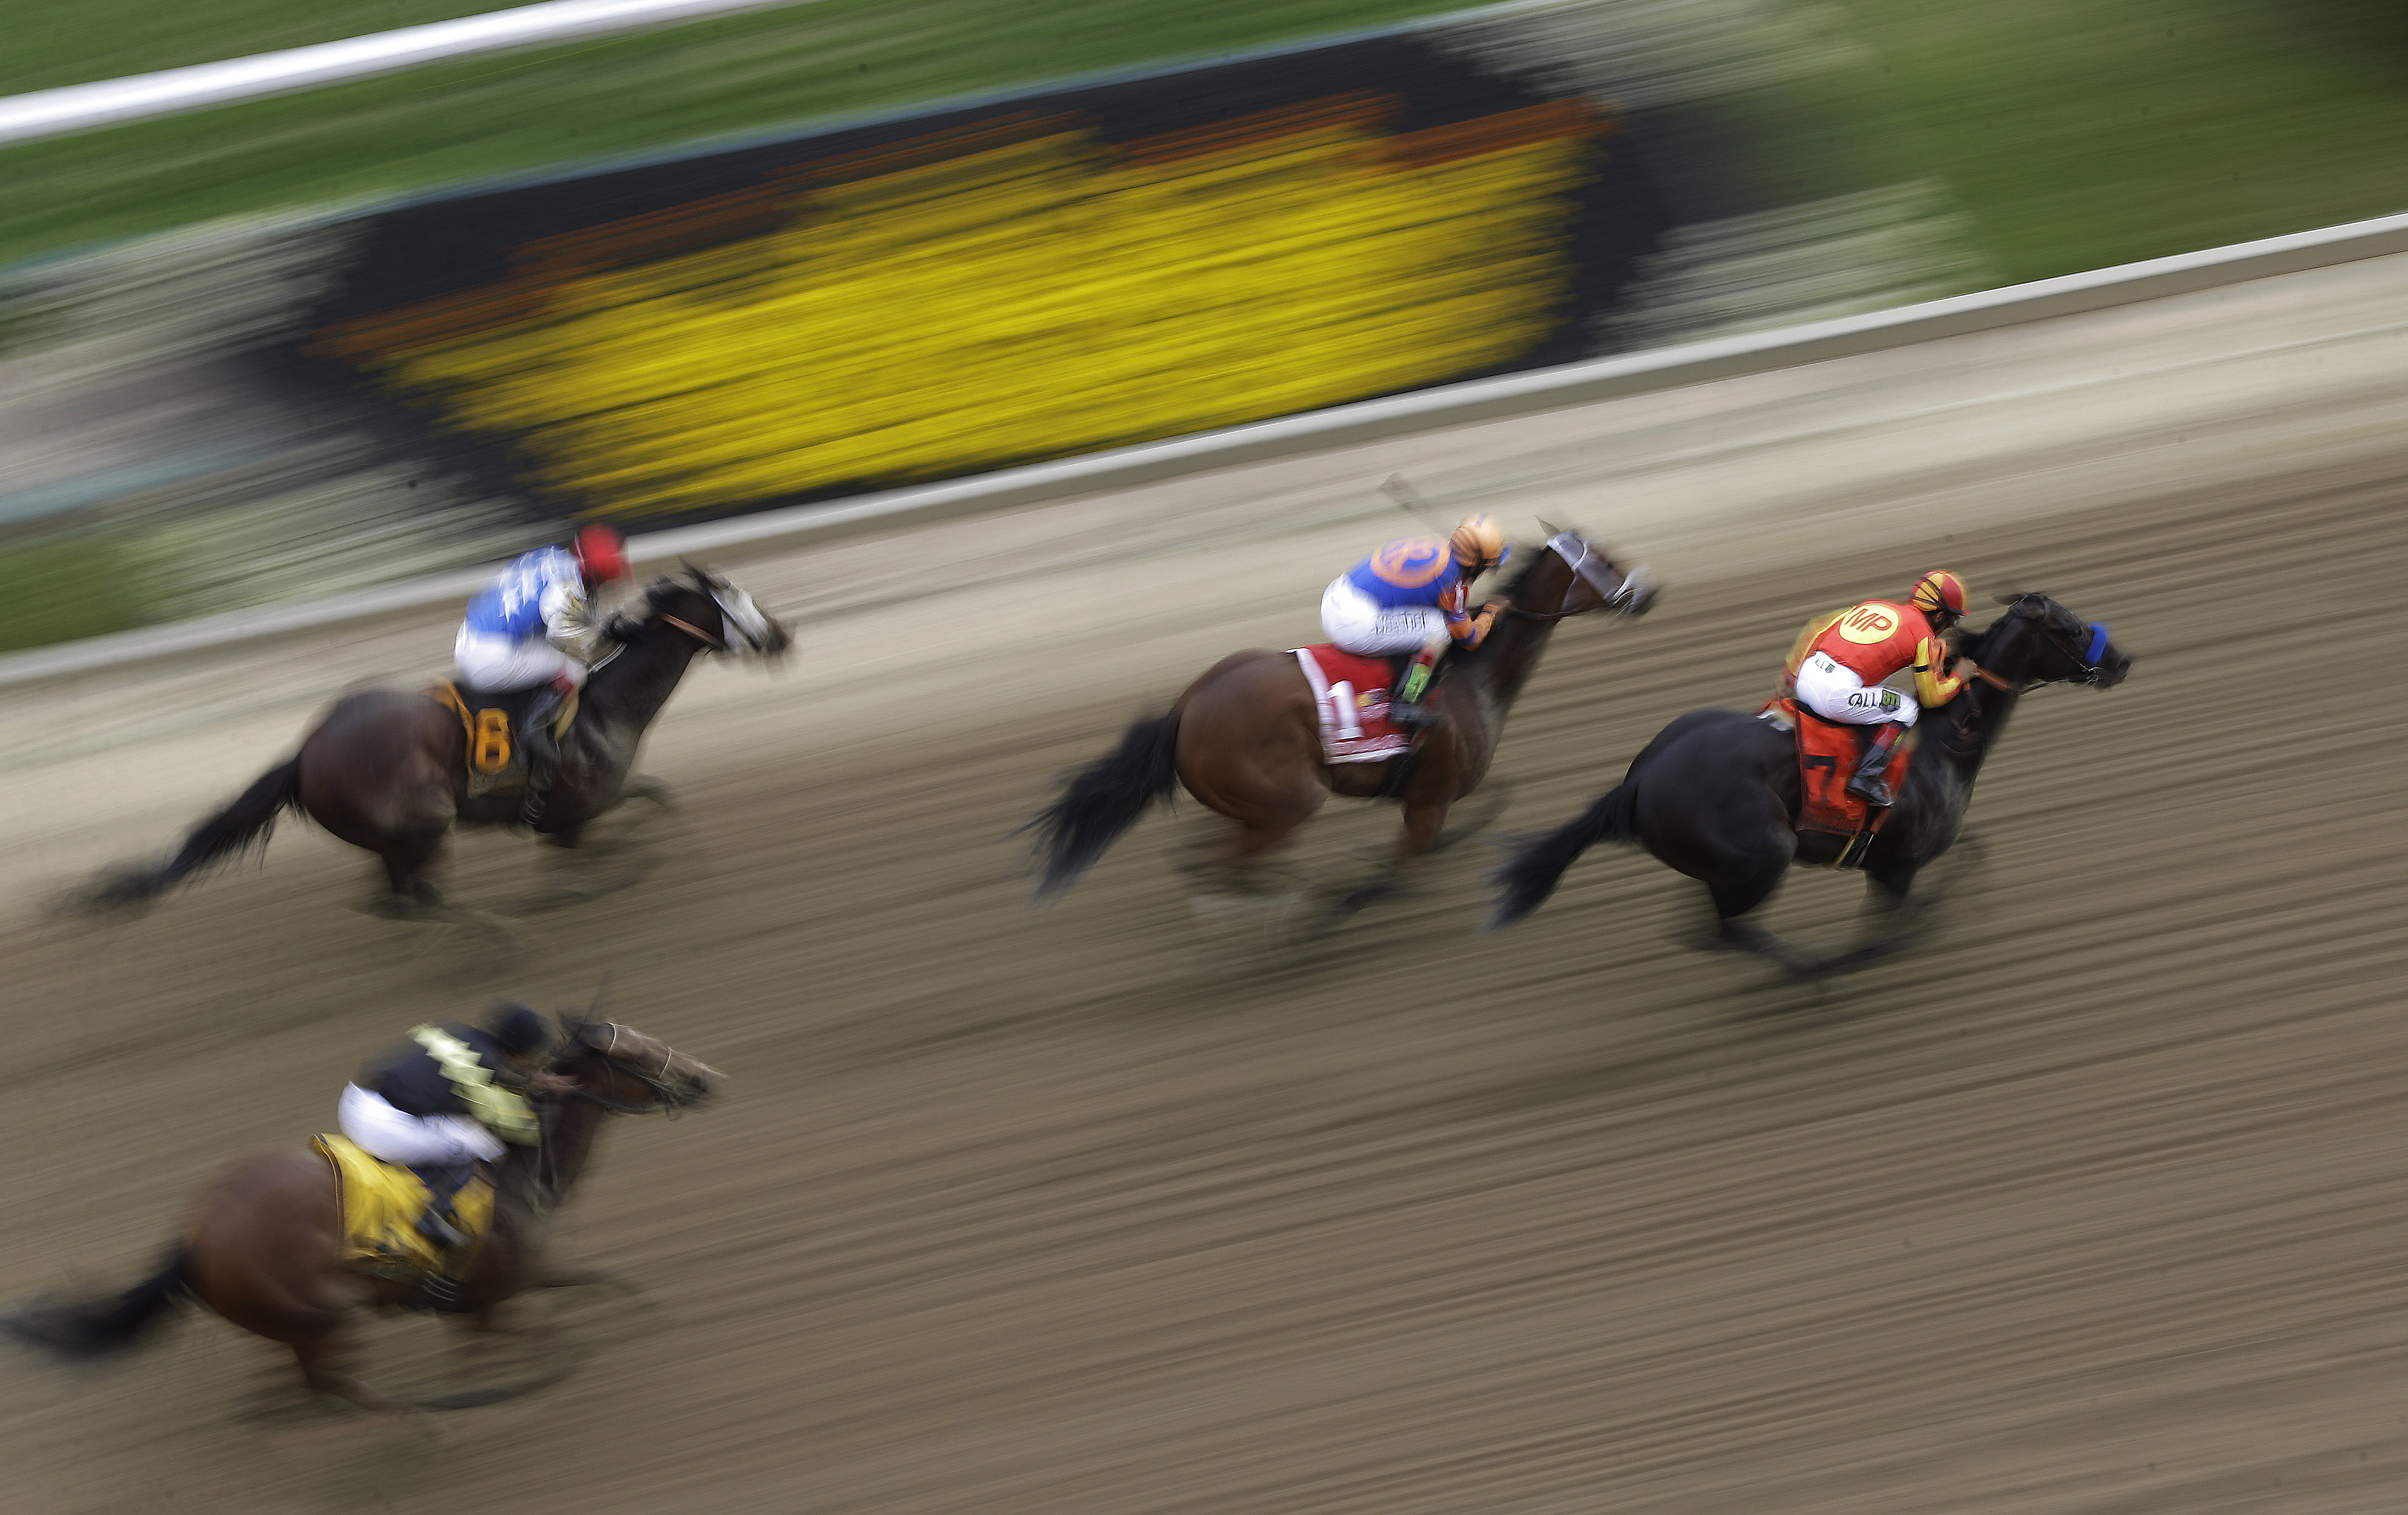 Horses run during the Gallorette Handicap ahead of the 140th Preakness Stakes horse race at Pimlico Race Course, Saturday, May 16, 2015, in Baltimore. (AP Photo/Patrick Semansky)